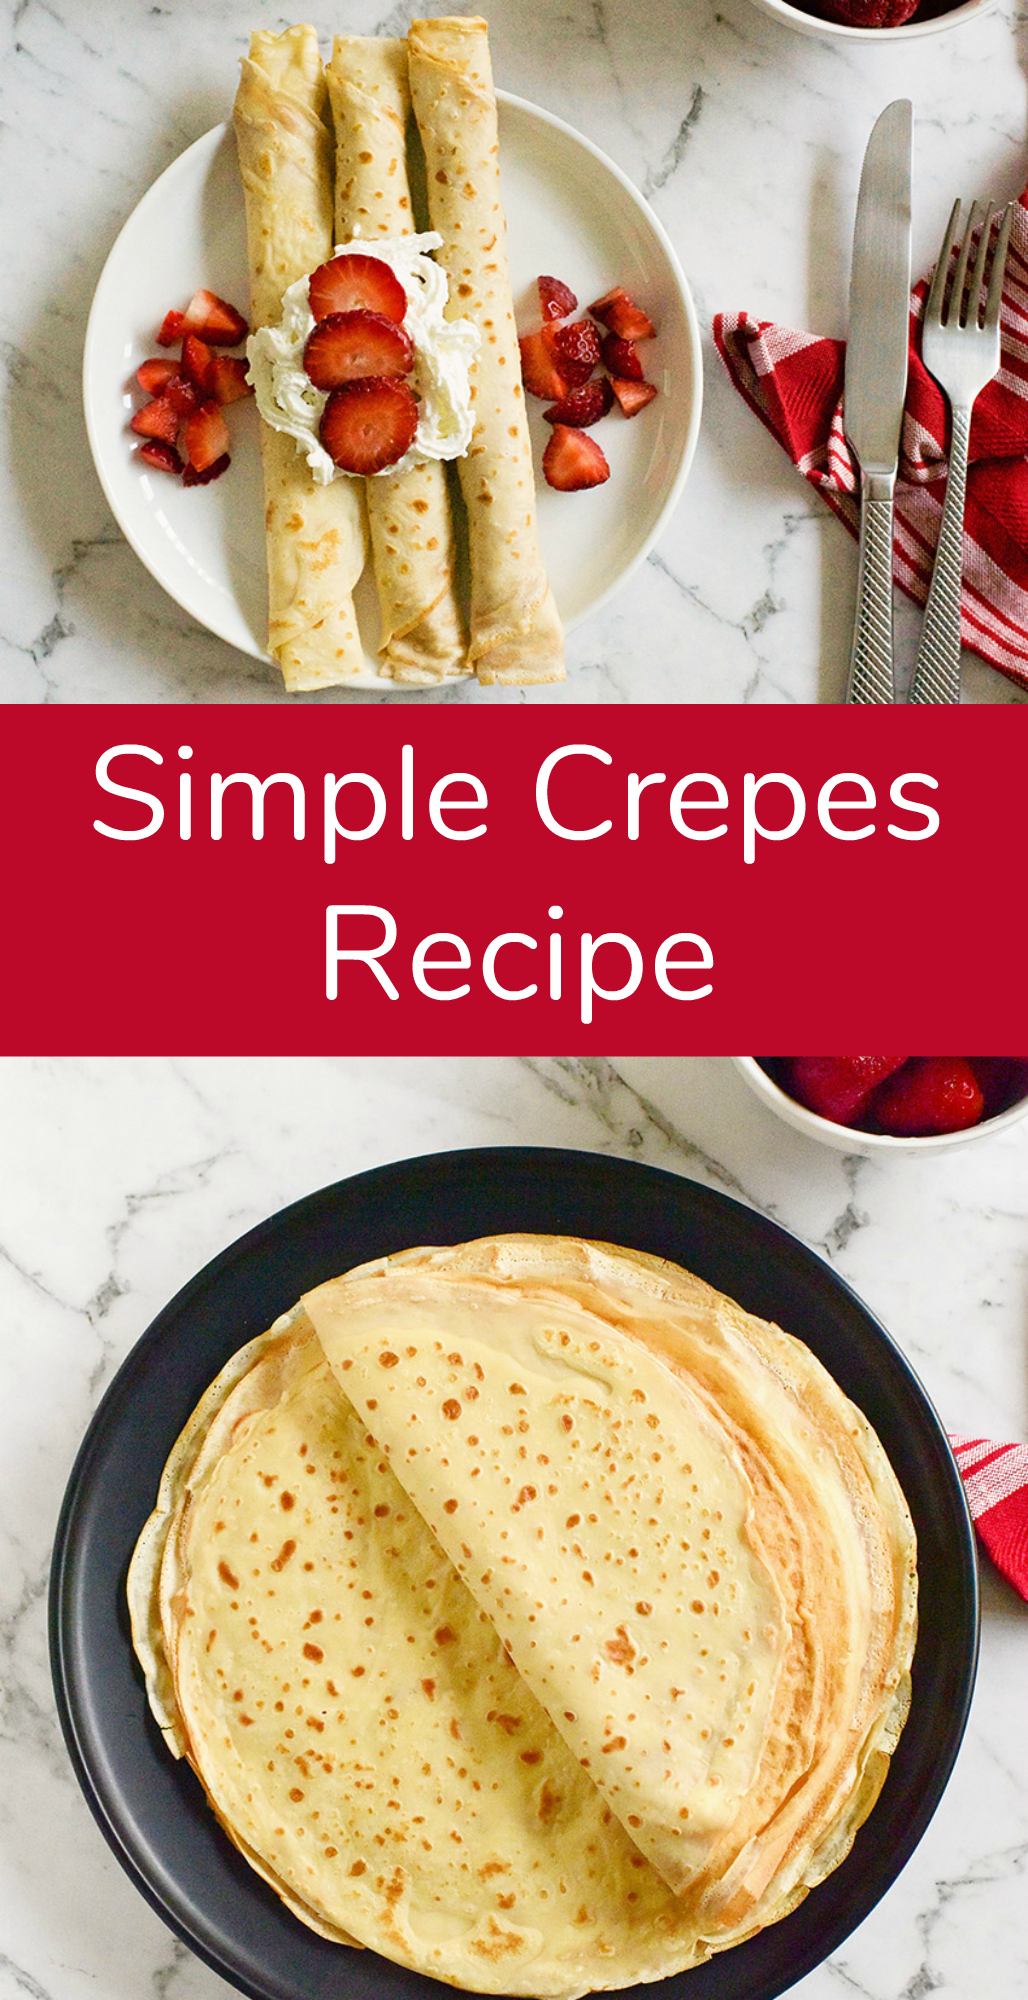 Make this Simple Crepes Recipe for Breakfast